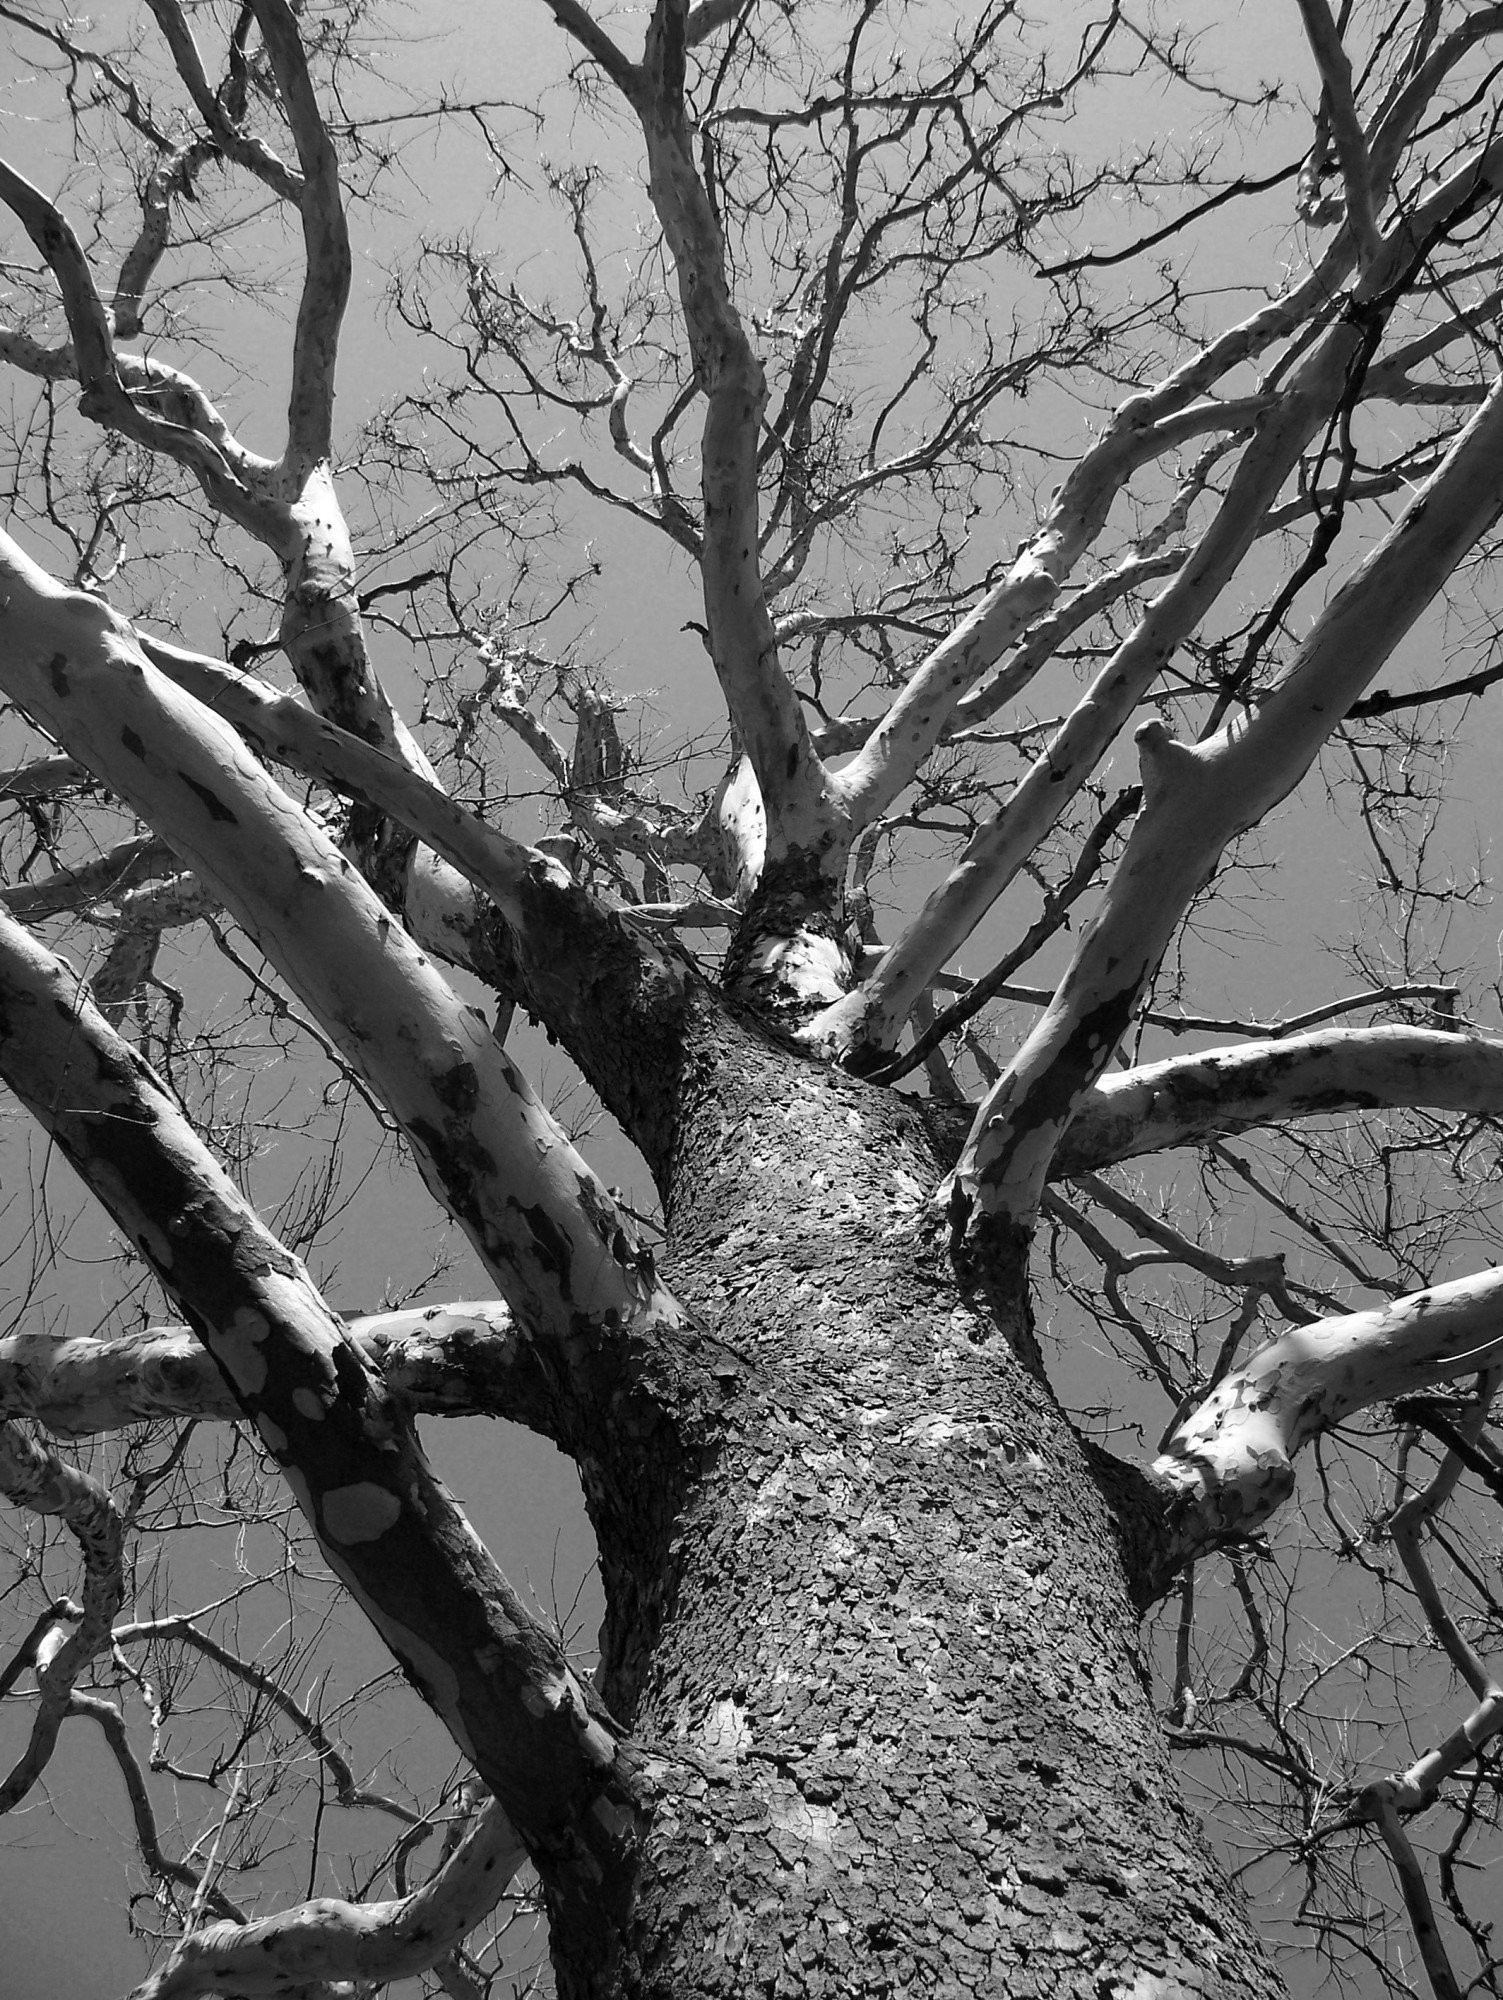 Dead Tree Removal: Why It's Incredibly Important to Remove Dead Trees